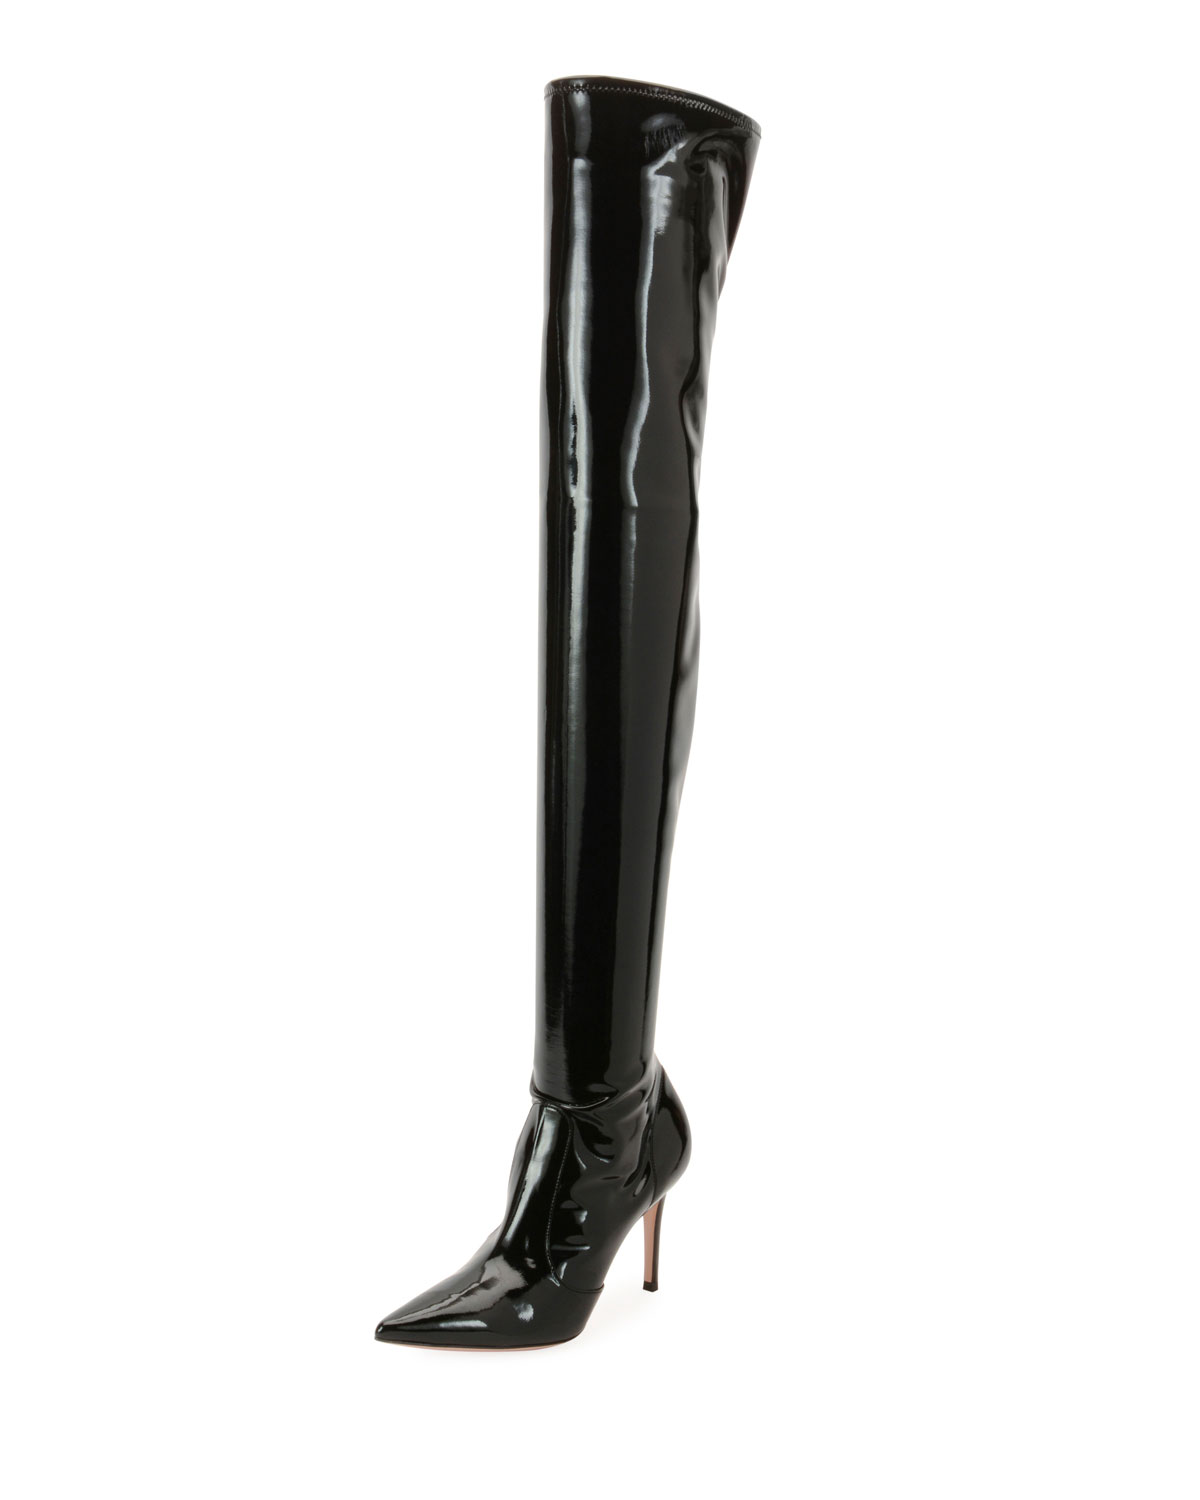 179a4961802 Gianvito Rossi Imogen Shiny Vinyl Over-The-Knee Boots